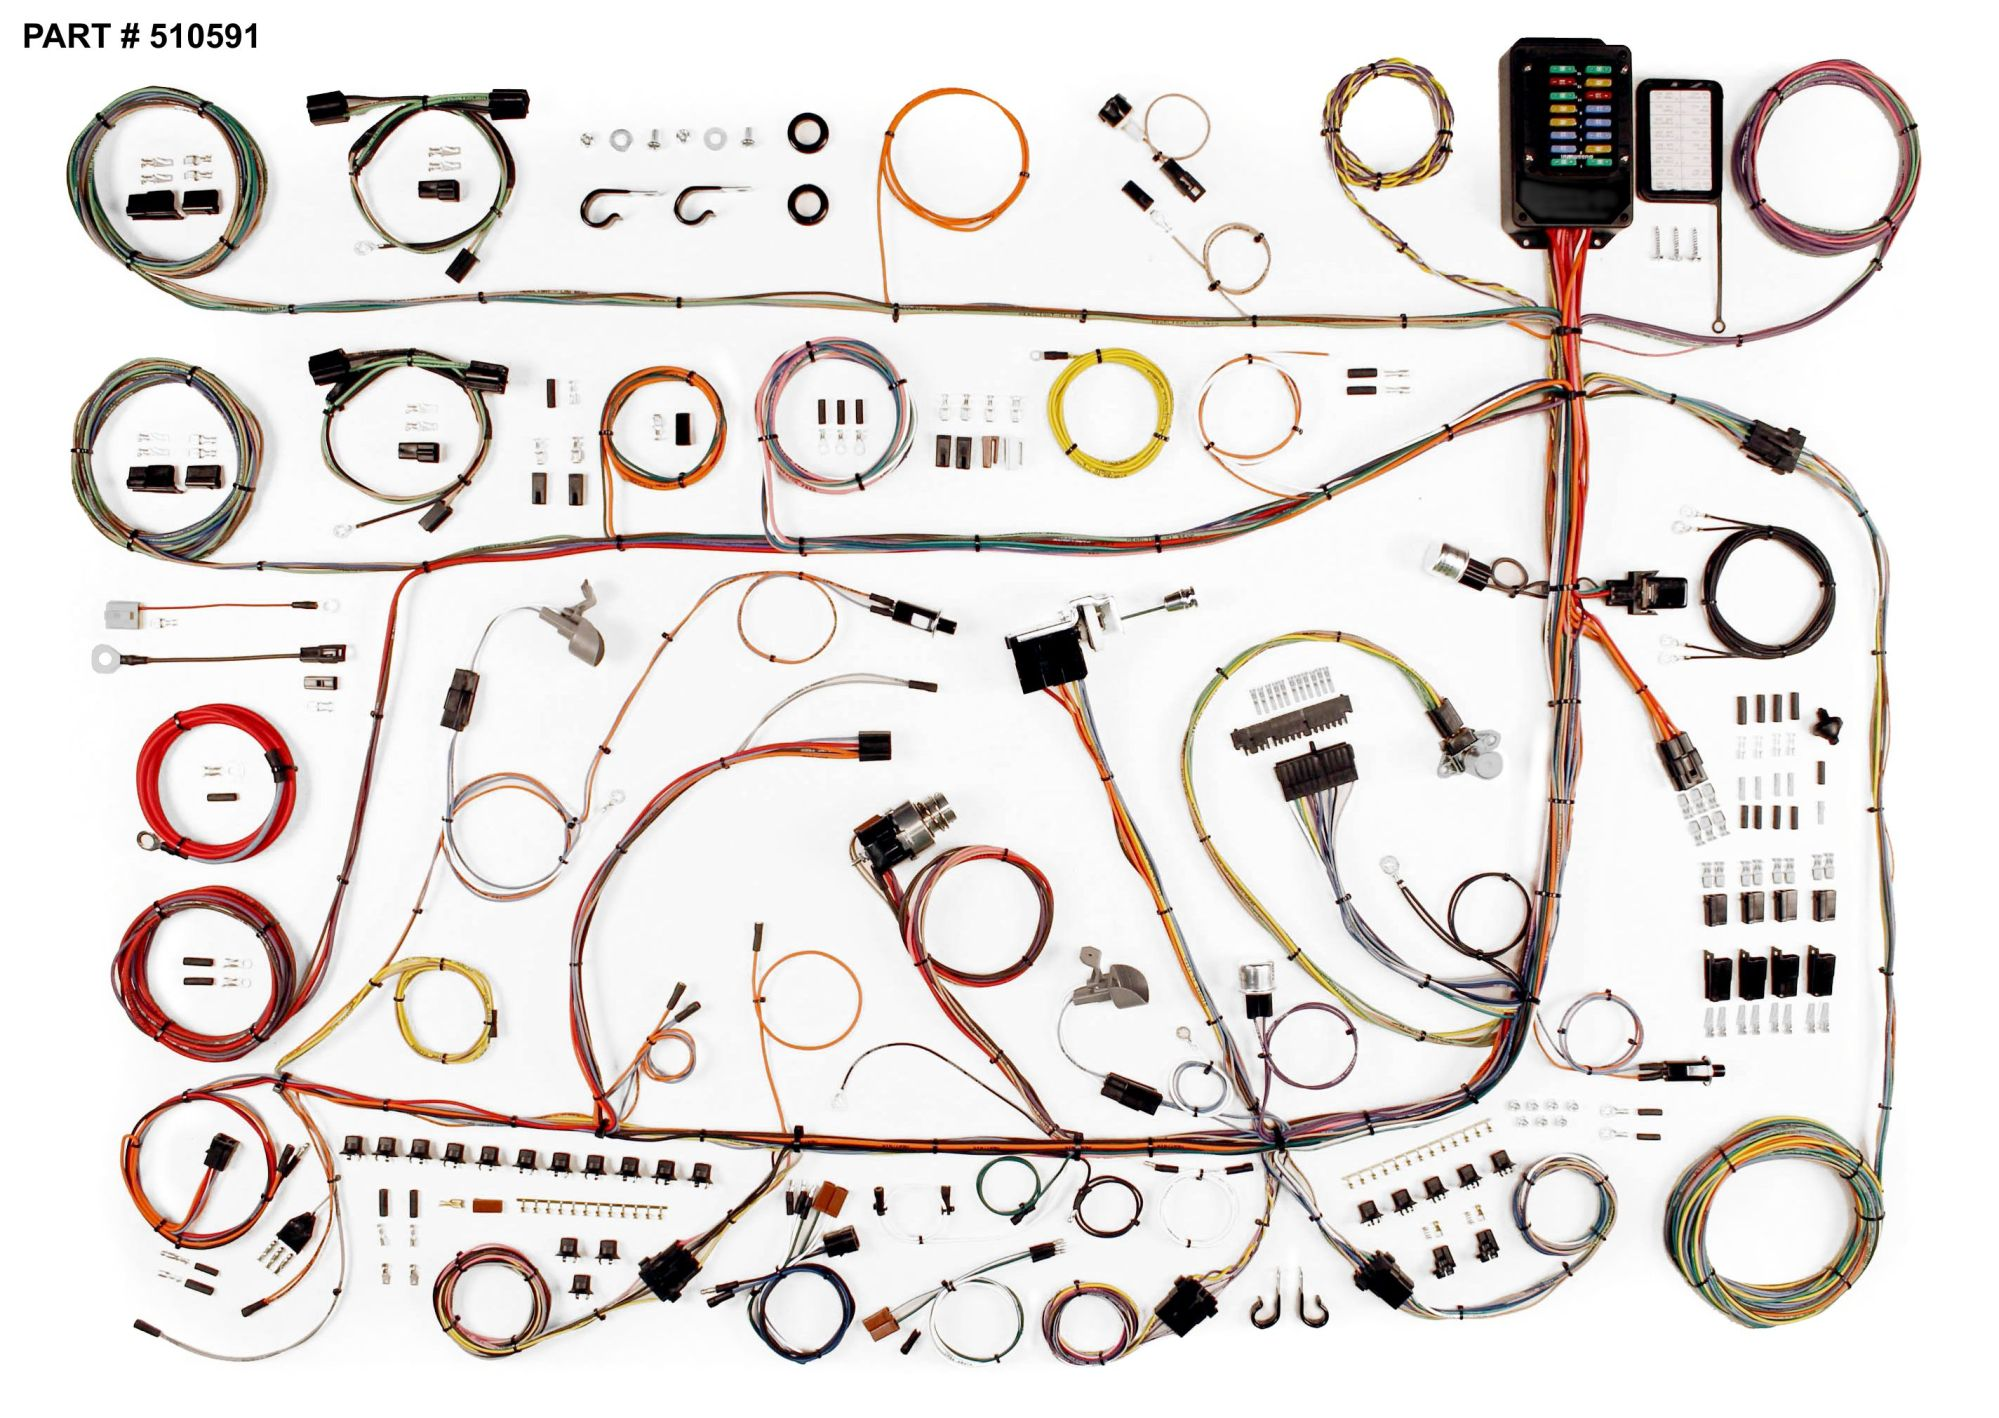 hight resolution of 1964 ford wire harness wiring diagrams 1960 1964 ford galaxie mercury fullsize restomod wiring system